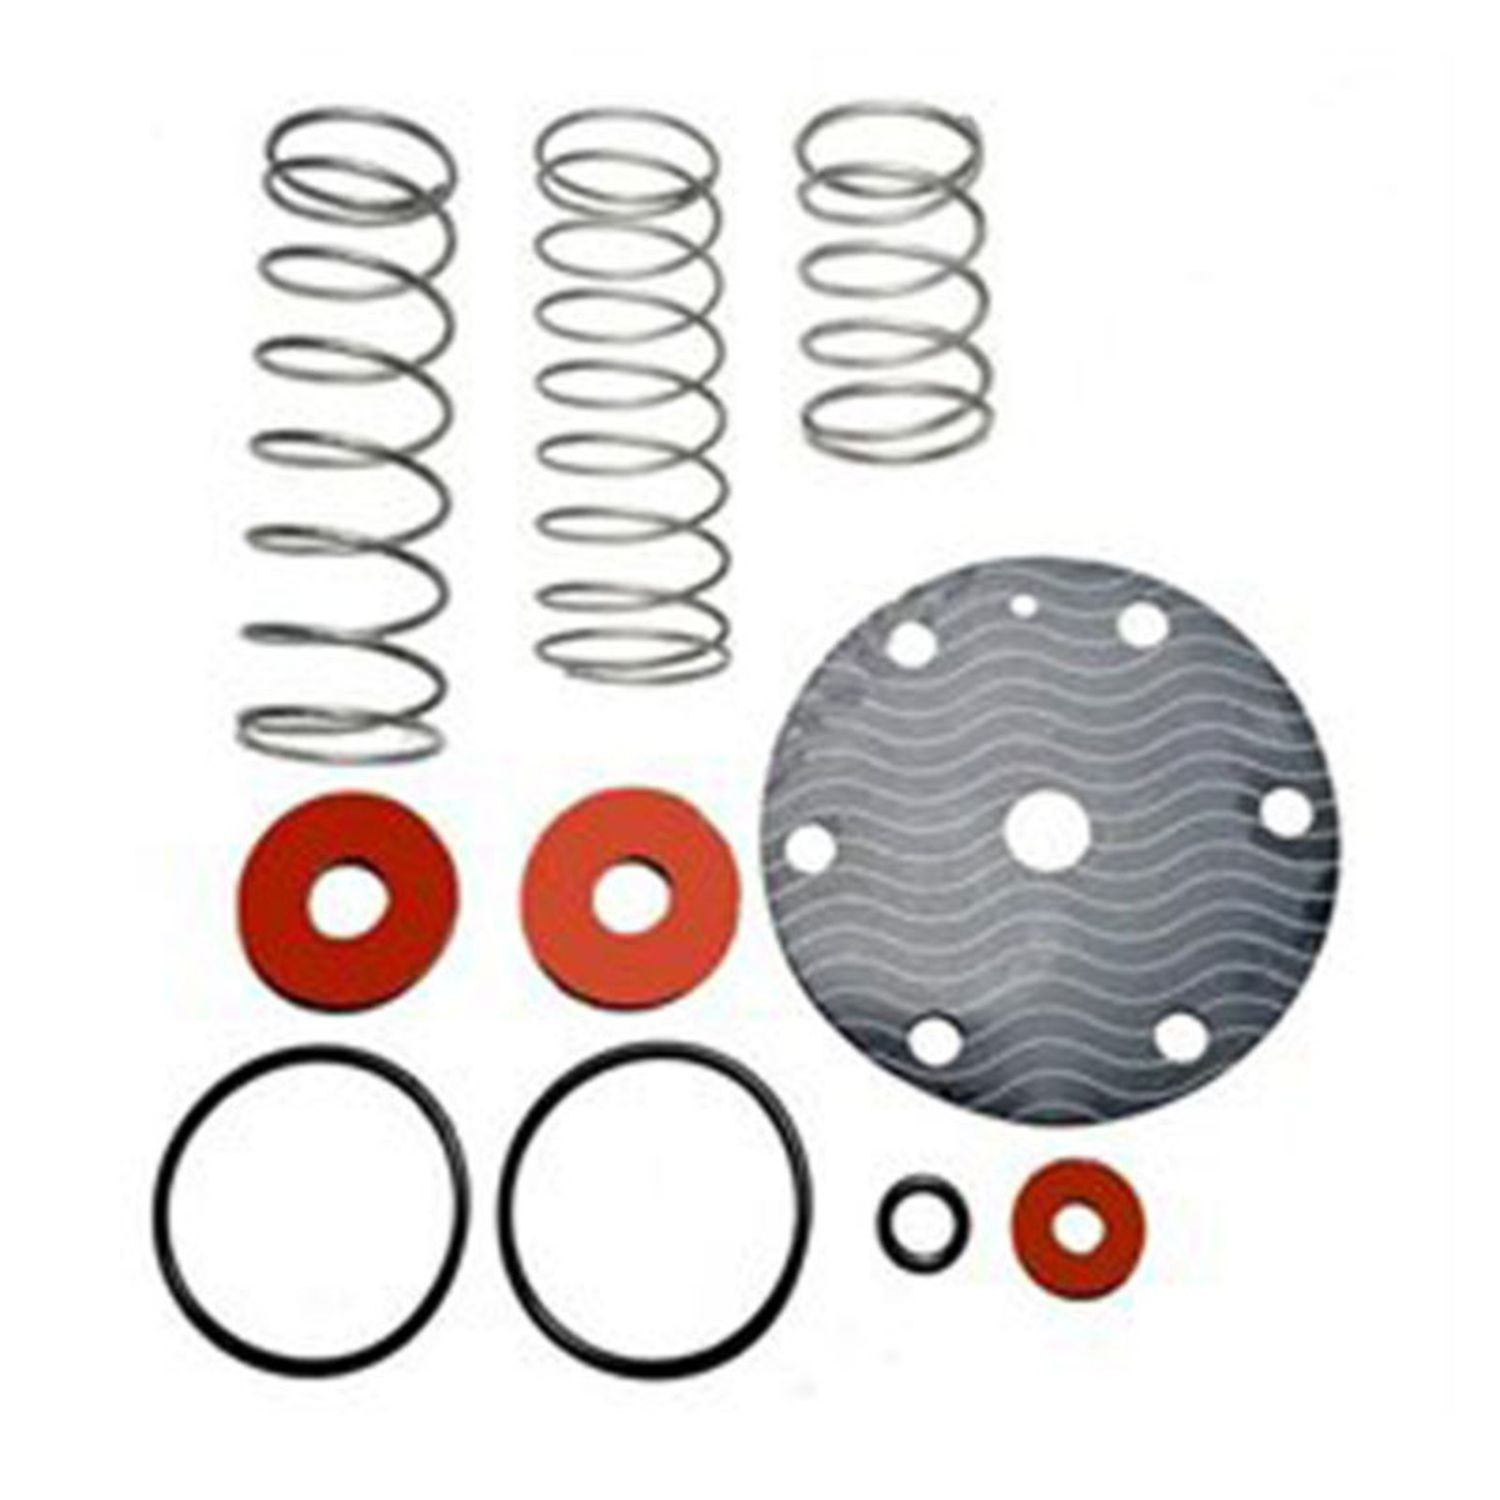 Zurn - Repair Kit - Backflow Preventer, Check and Relief